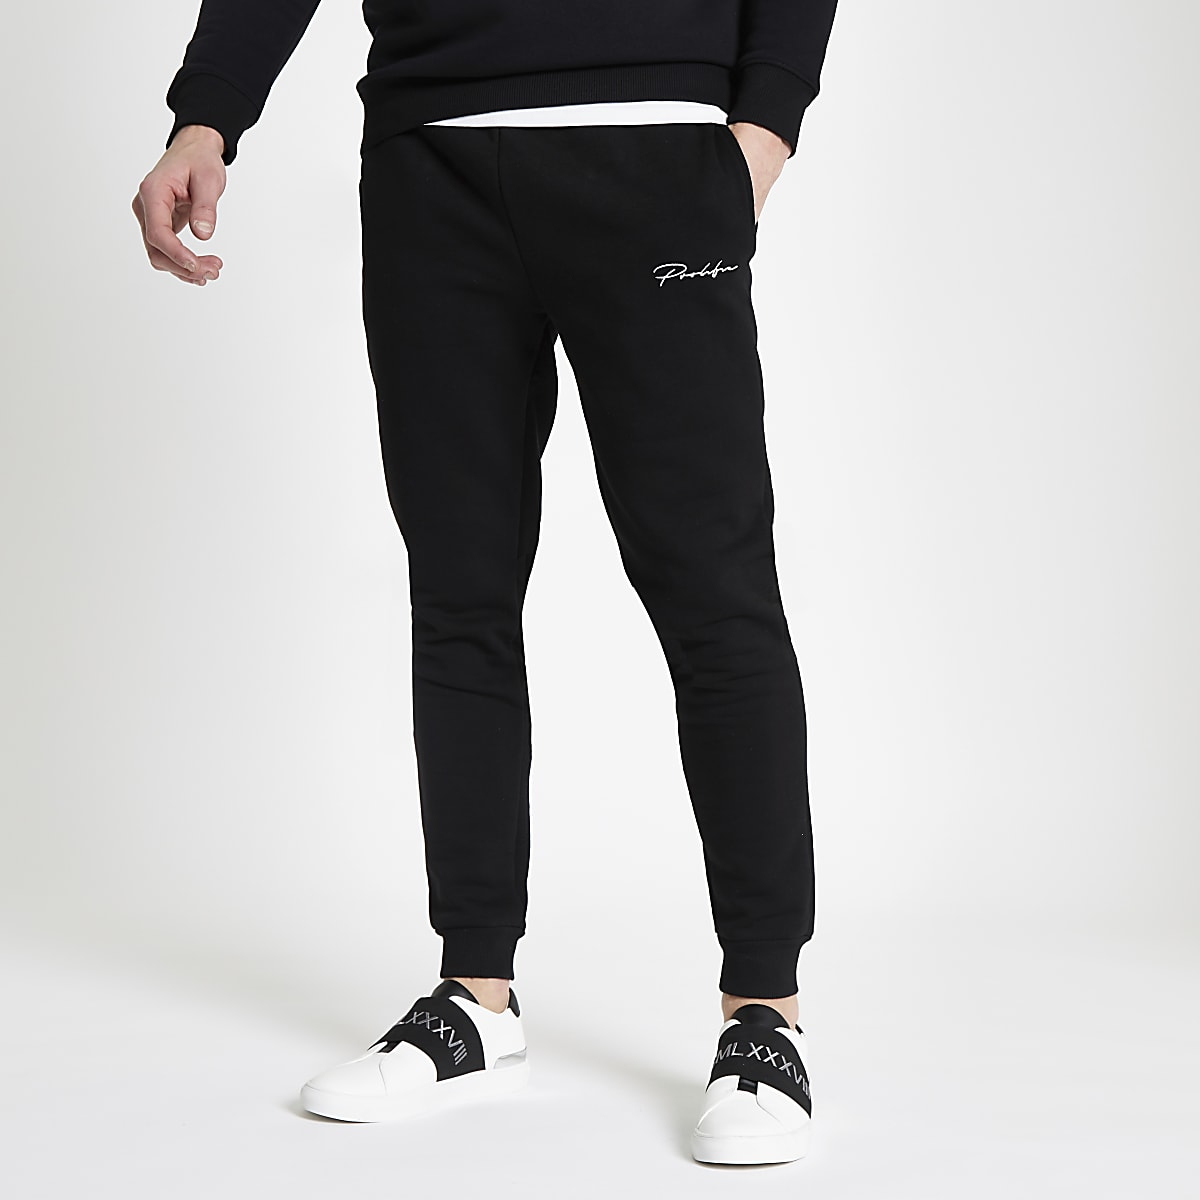 Zwarte 'Prolific' slim-fit joggingbroek